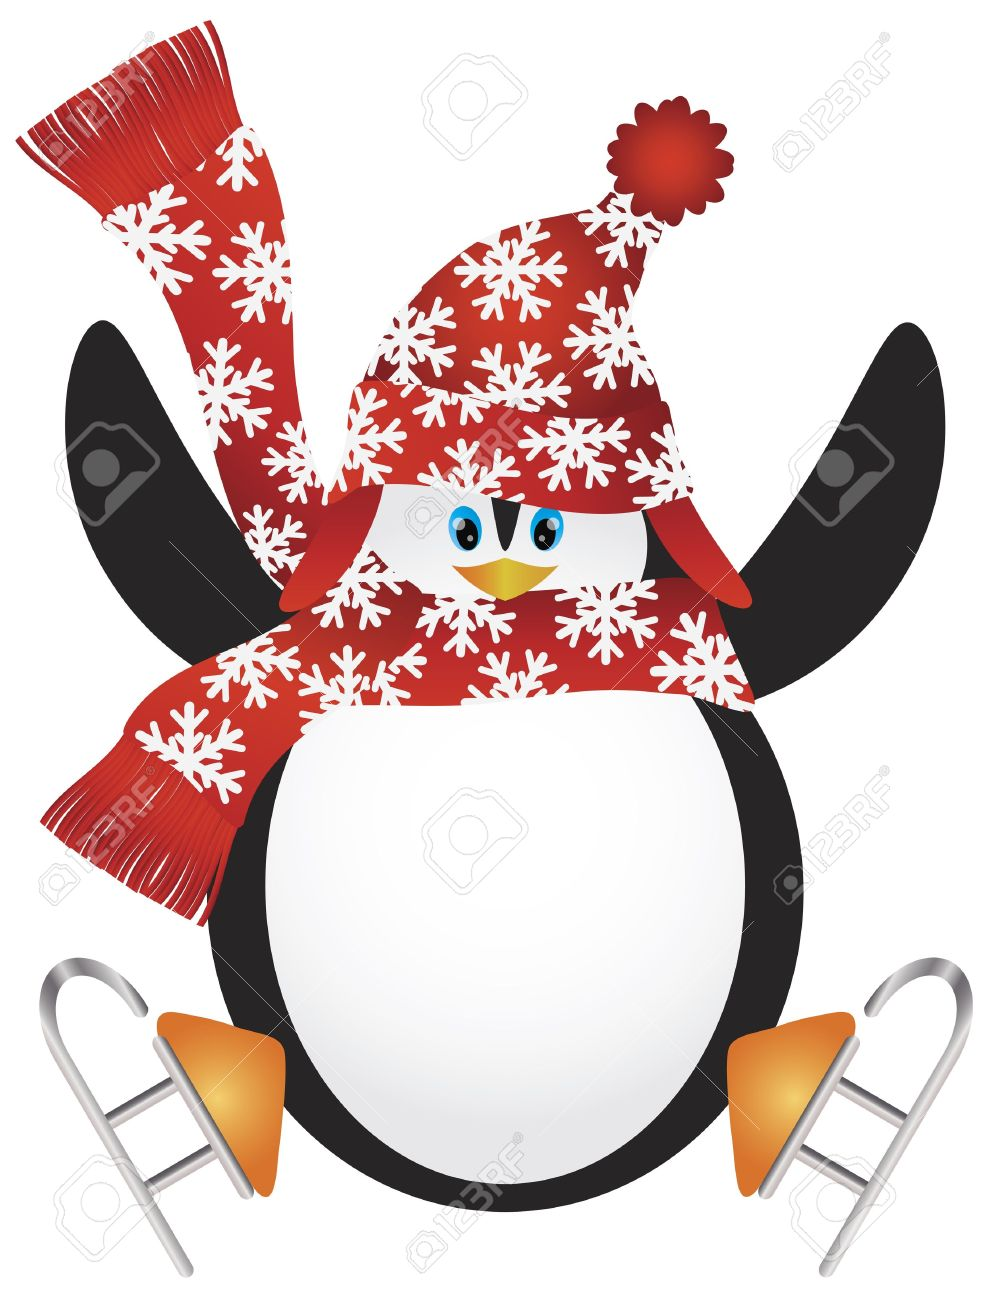 Christmas Penguin with Santa Hat and Scarf Ice Skating Doing the Split Jump Illustration Stock Vector - 16008396